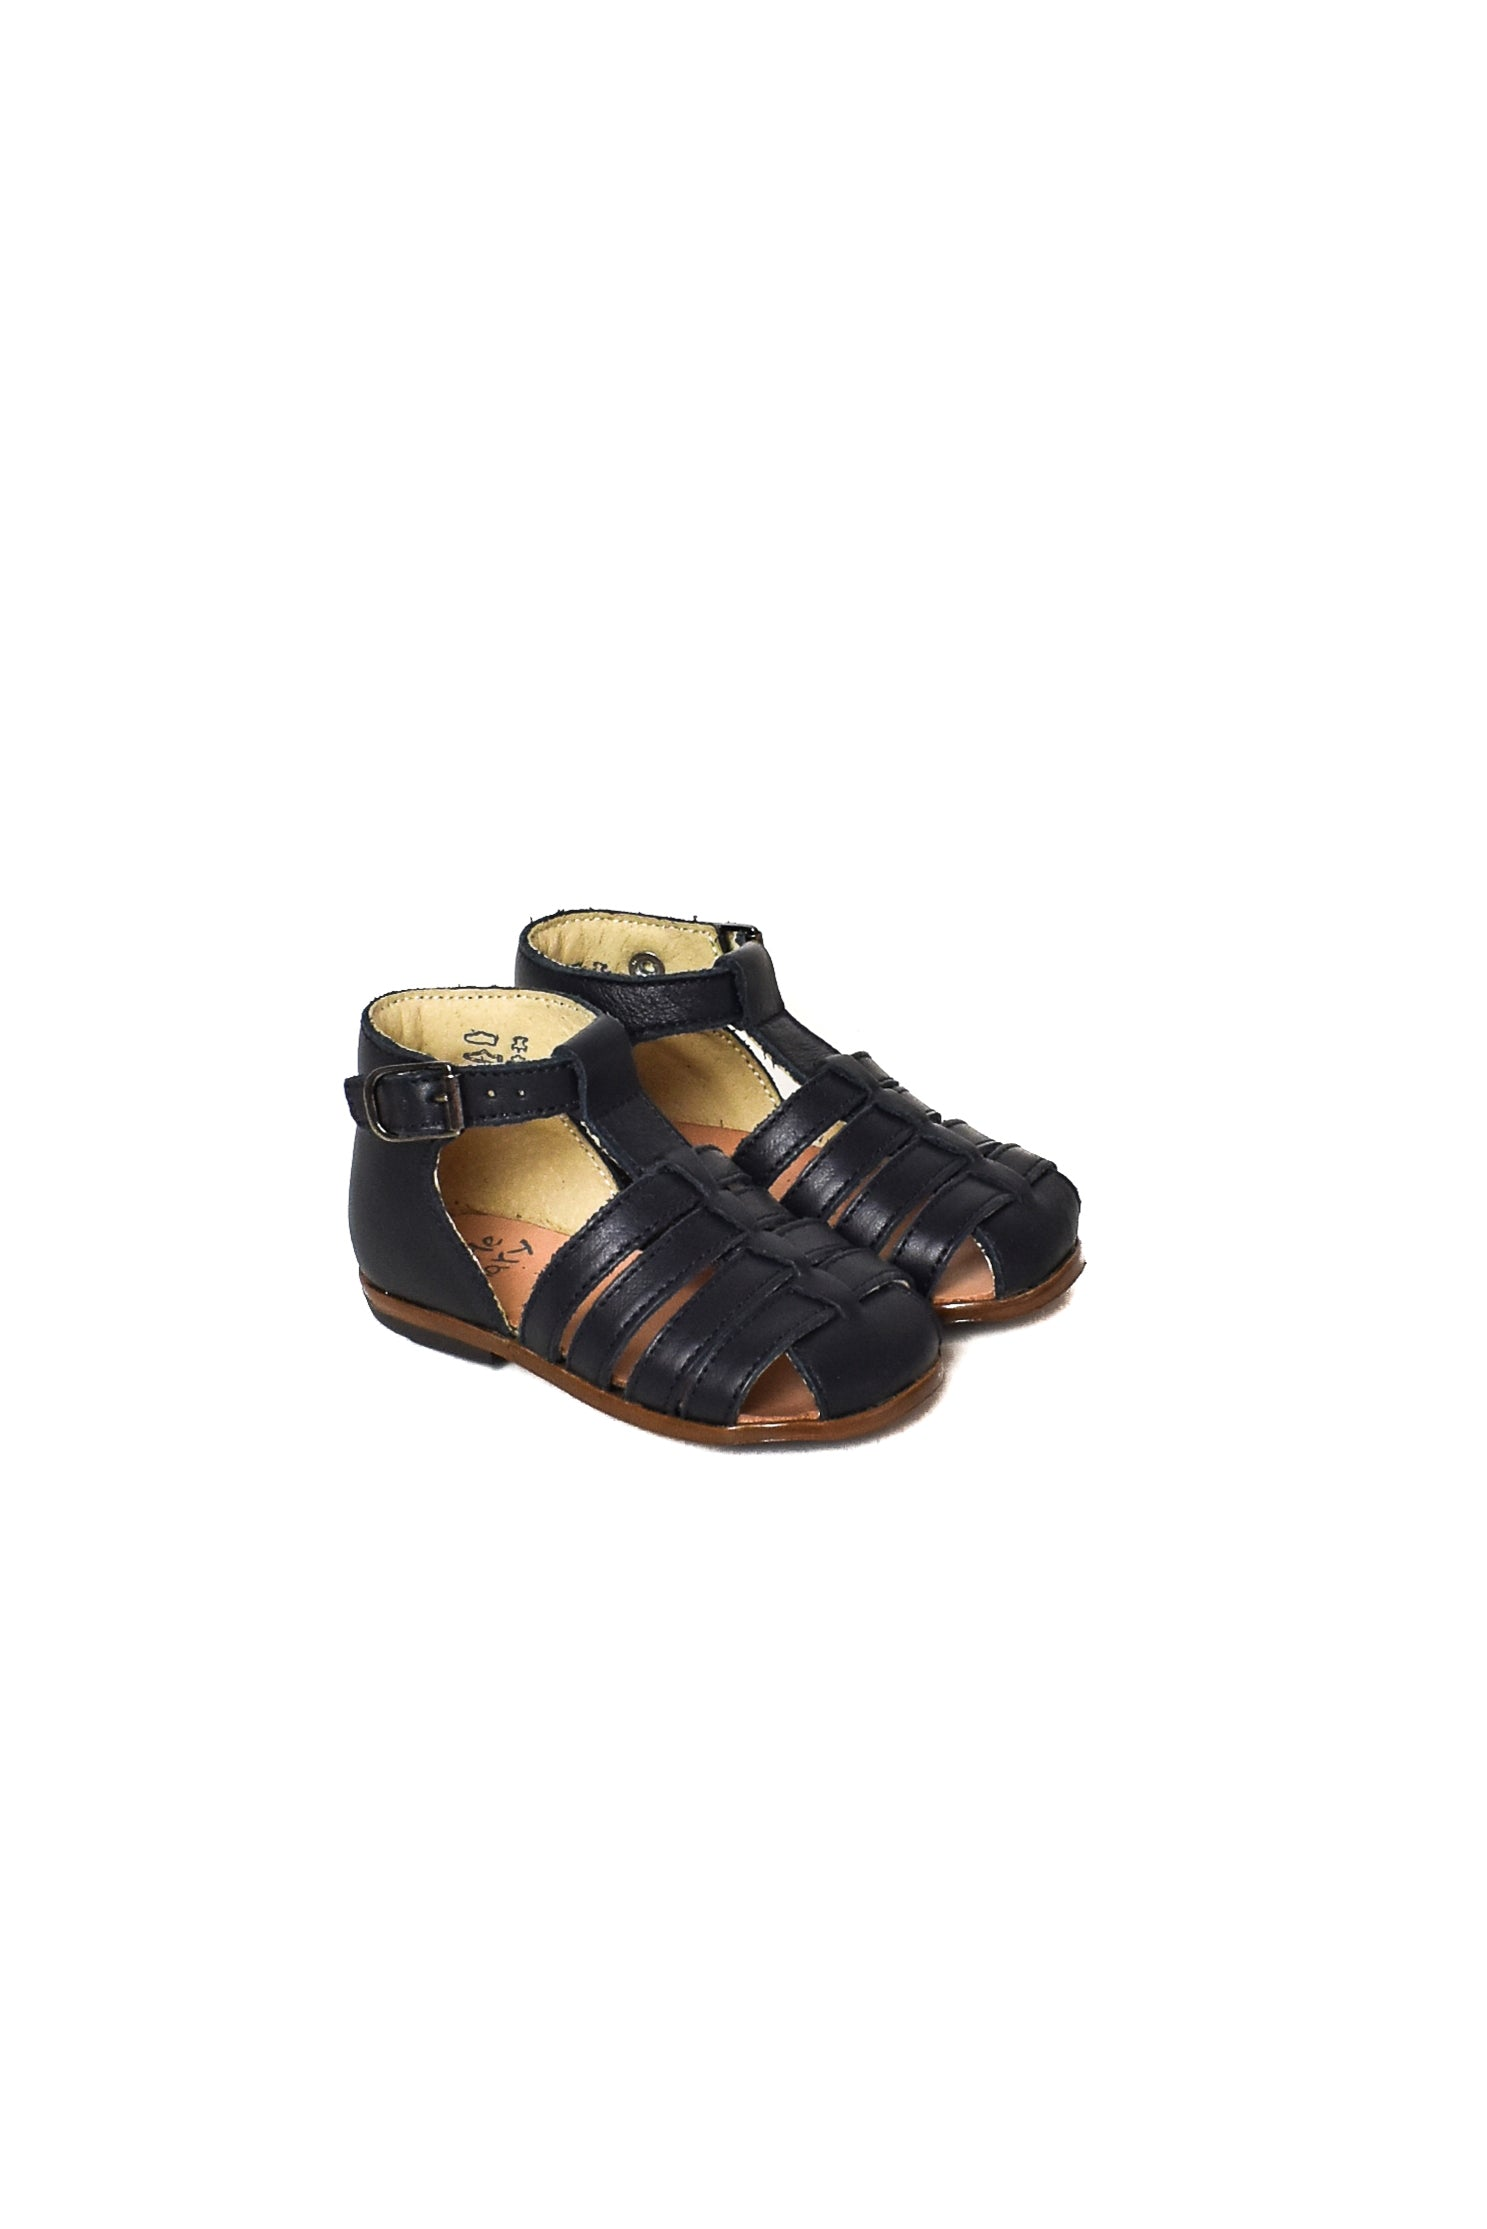 10007862 Little Mary Kids~Sandals 12M-3T (EU 20-24) at Retykle